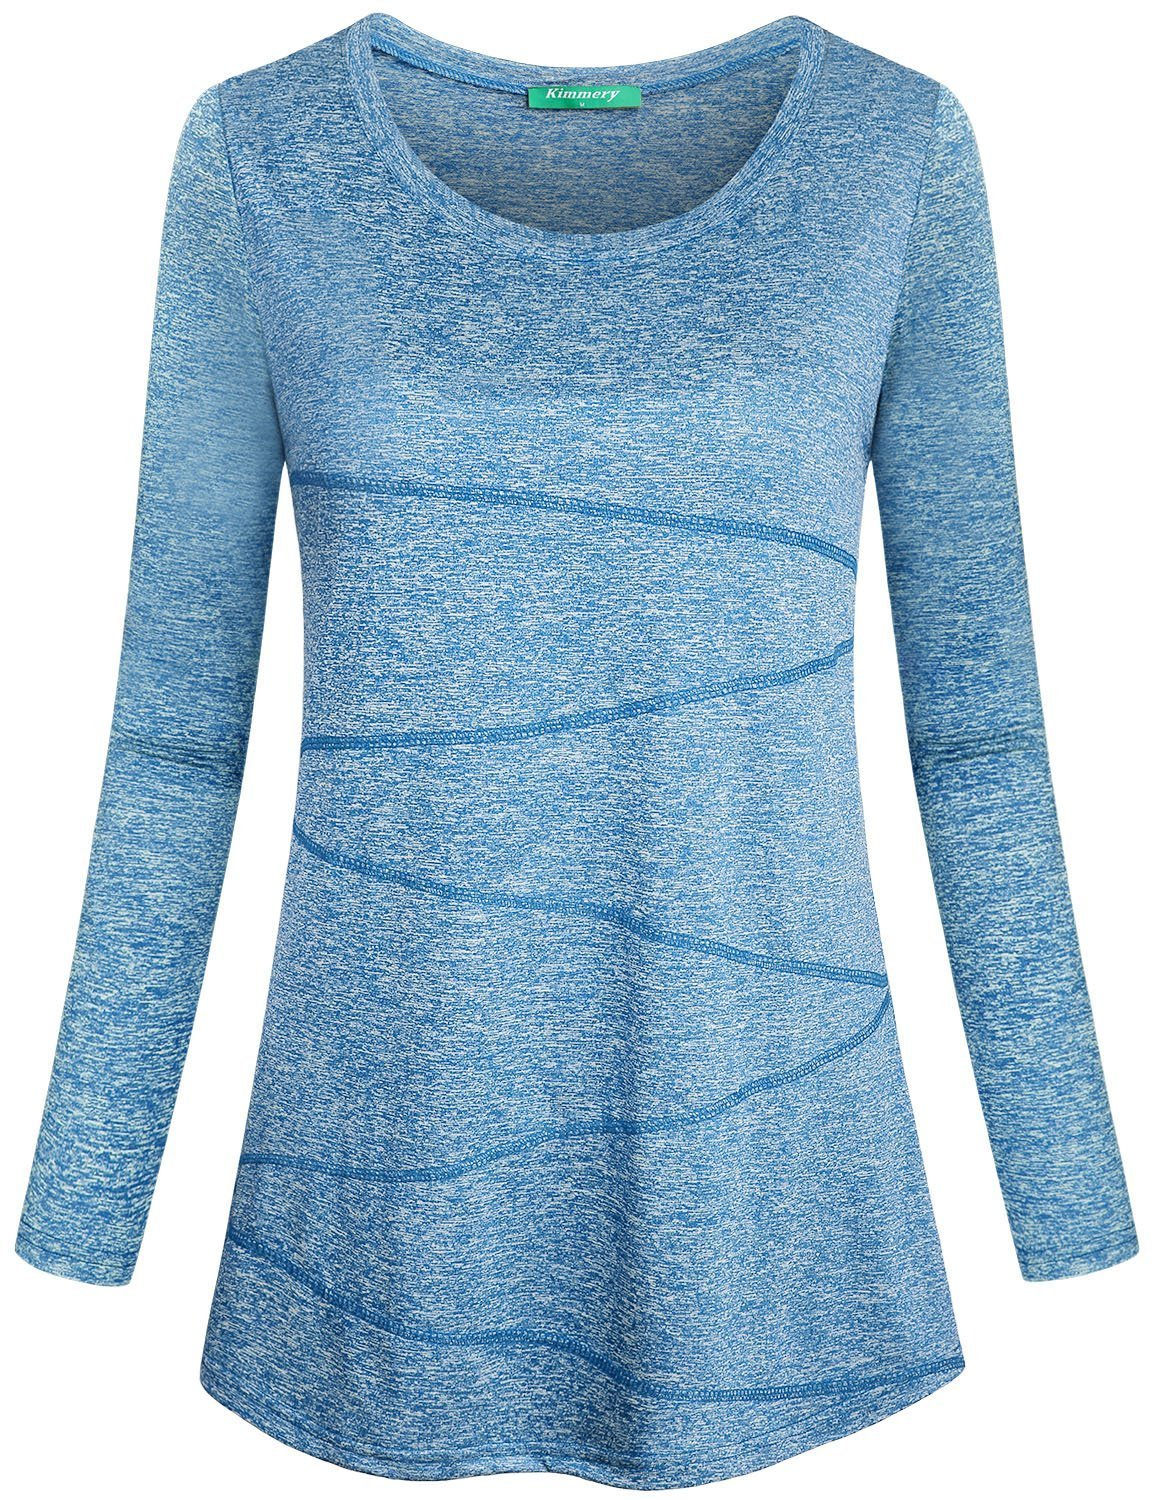 Kimmery Yoga Tunic, Running Tops for Women Long Sleeve Scoop Collar Space Dye Pilates Shirts Pullover Style Ladies Exercise Casual Clothes Light Blue Medium